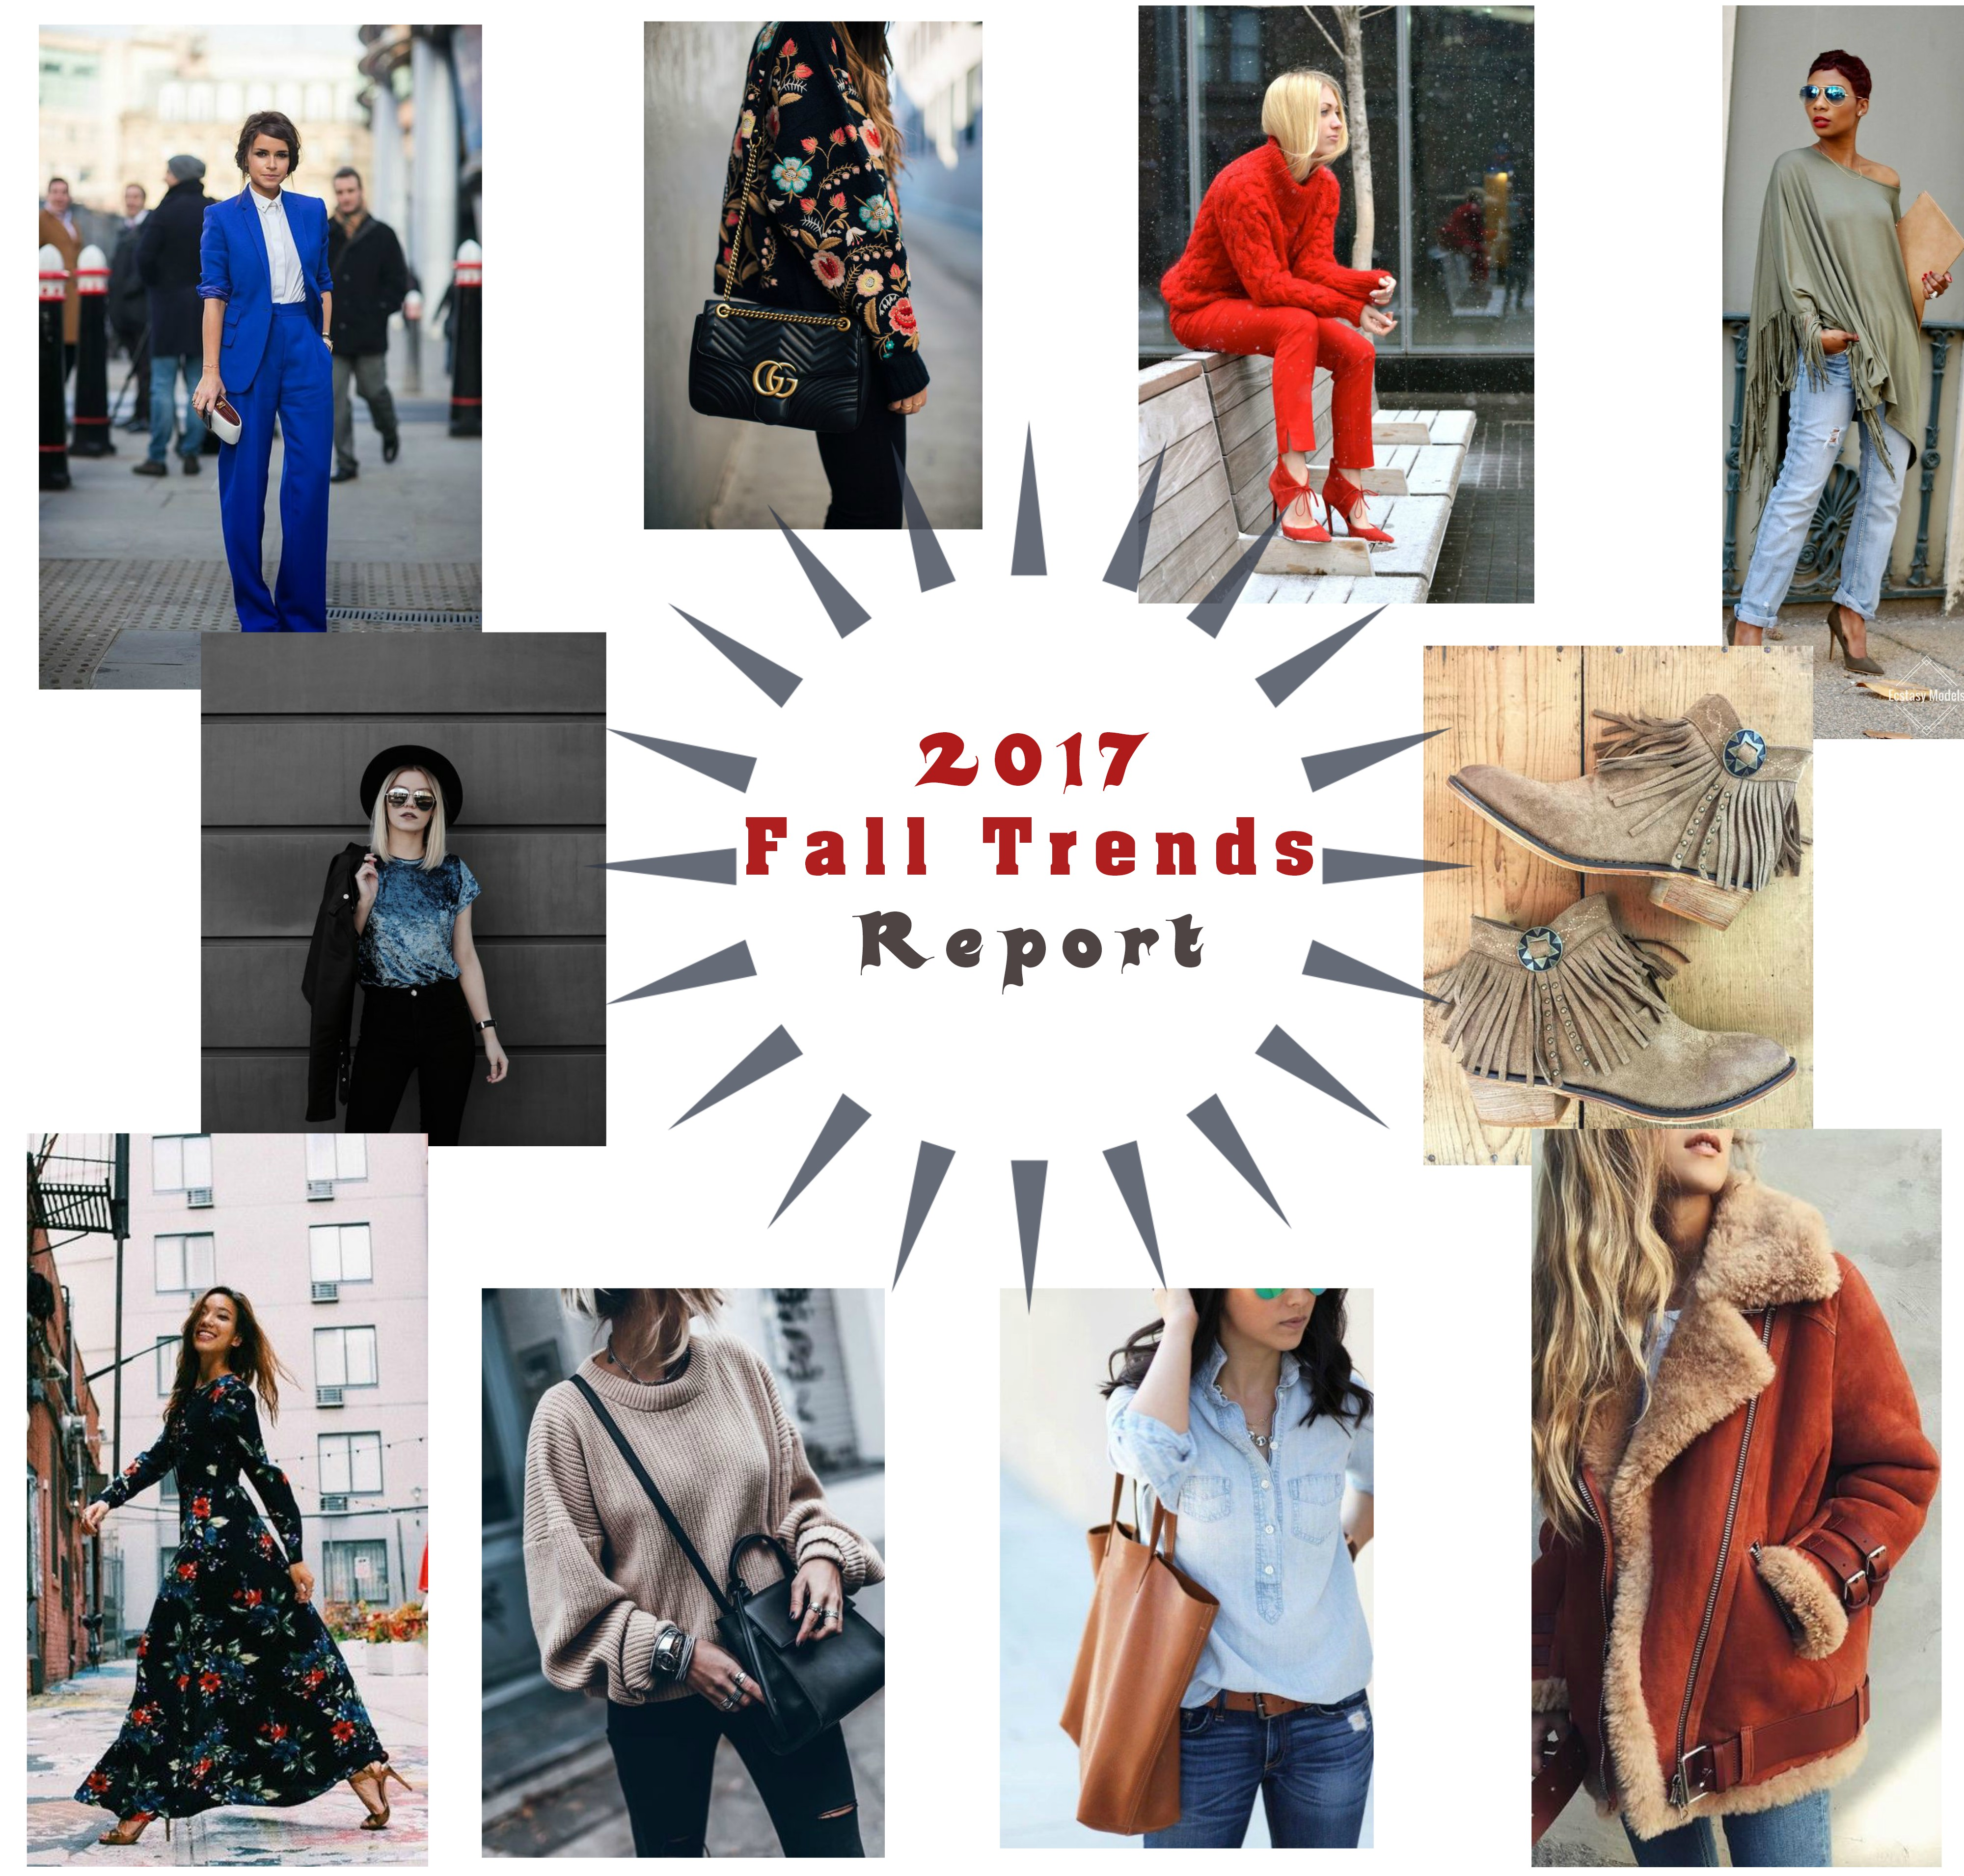 2017 fall trends report